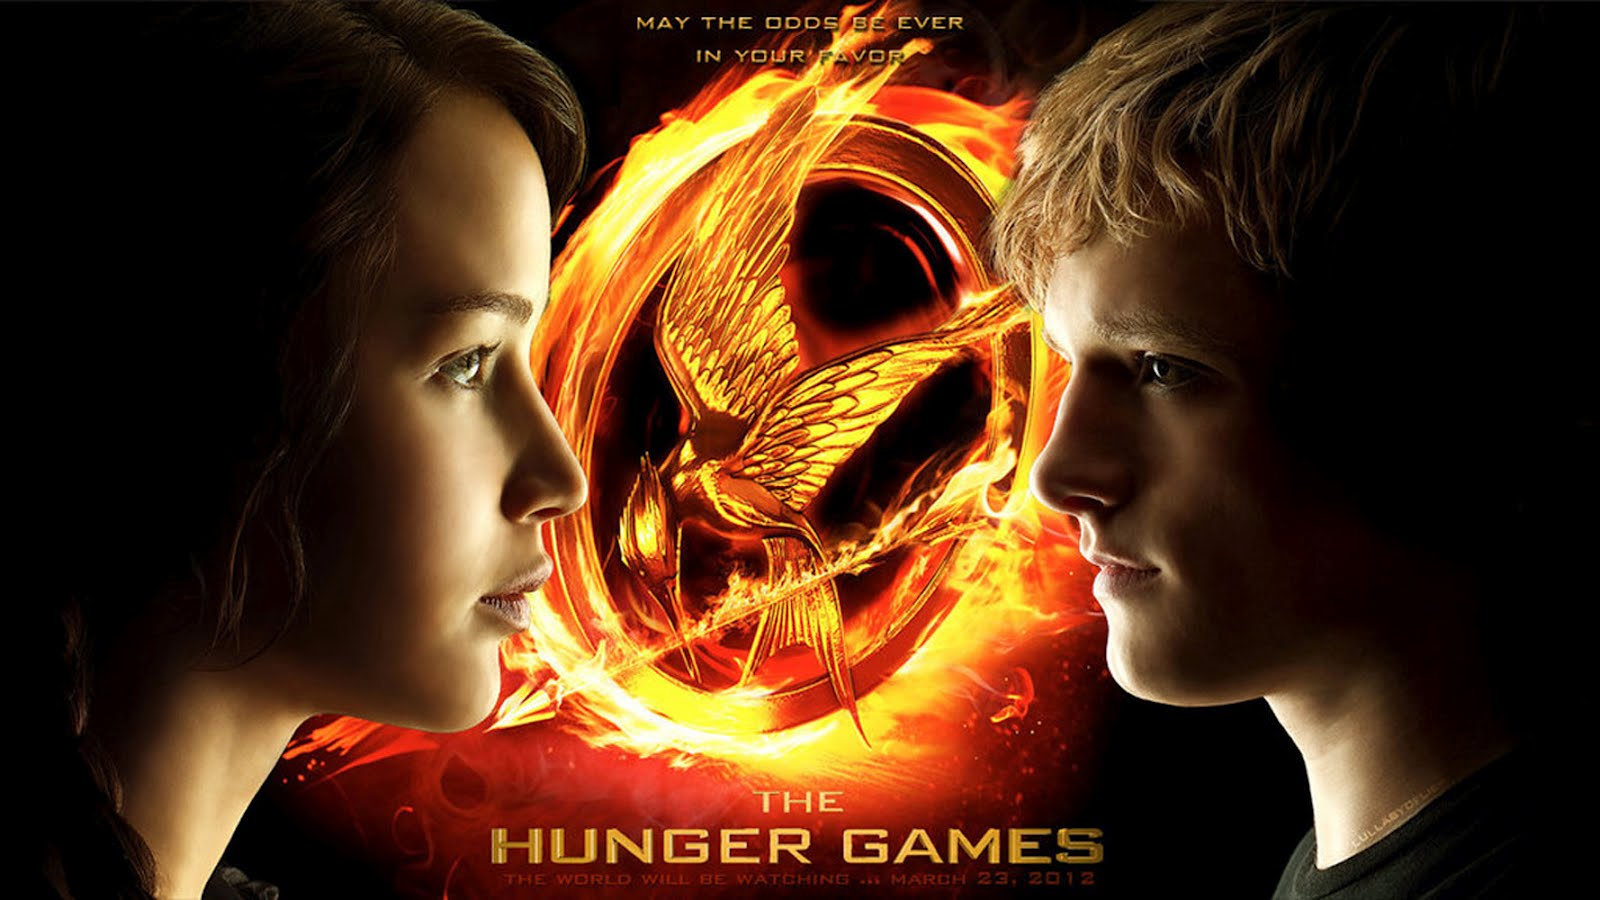 The Hunger Games Wallpapers 1600x900